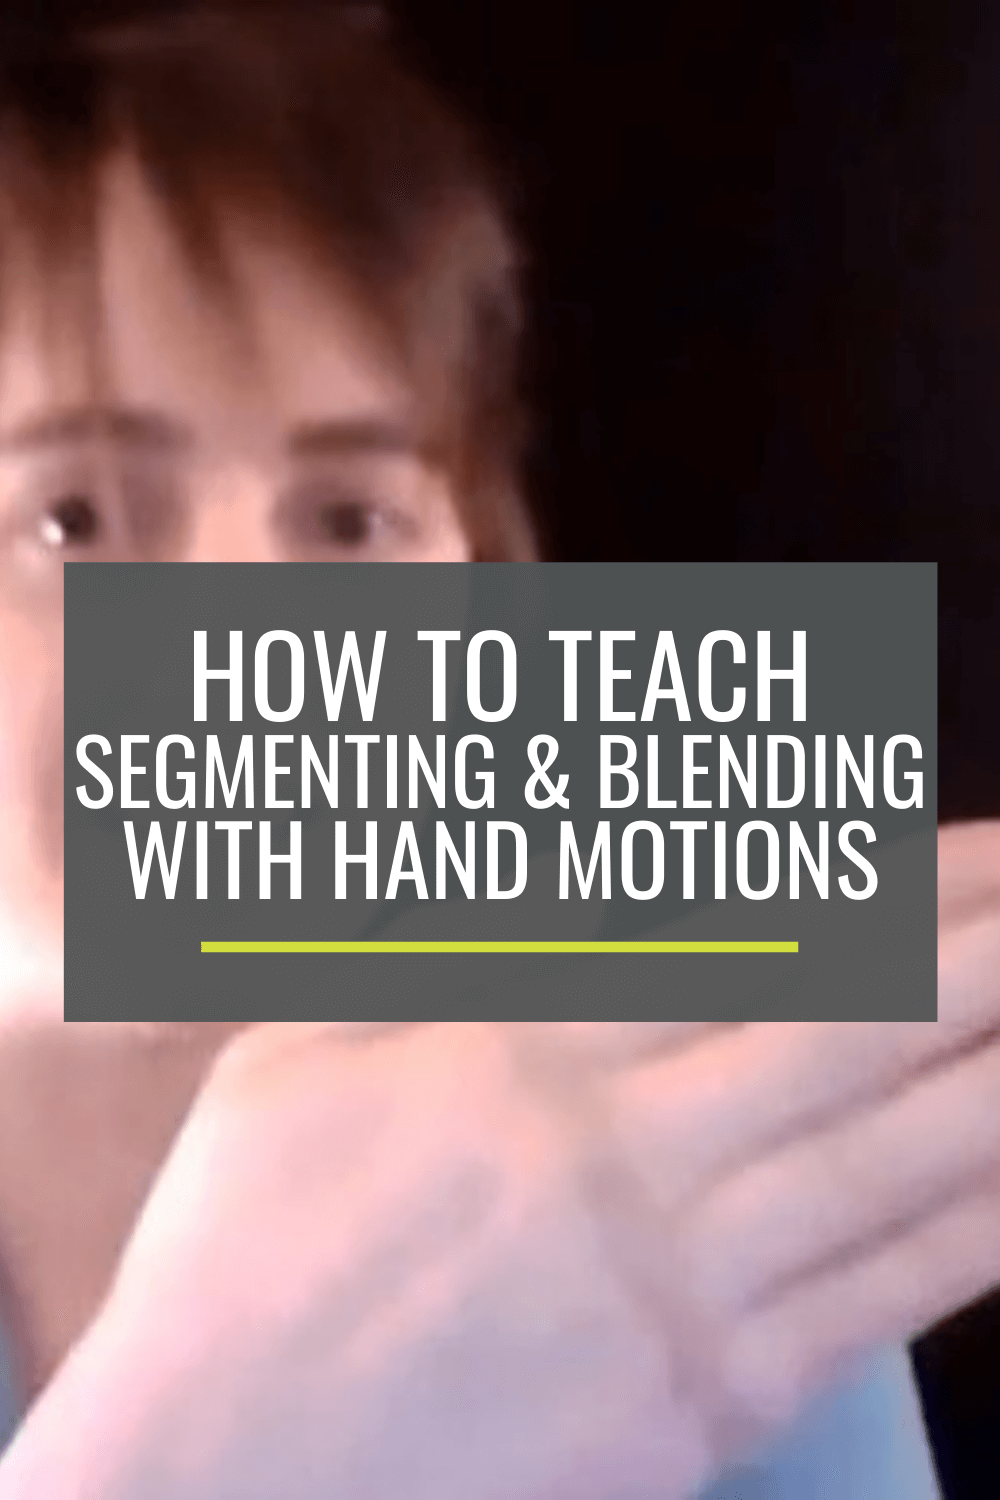 How to Teach Kinders to Segment and Blend Using Hand Motions